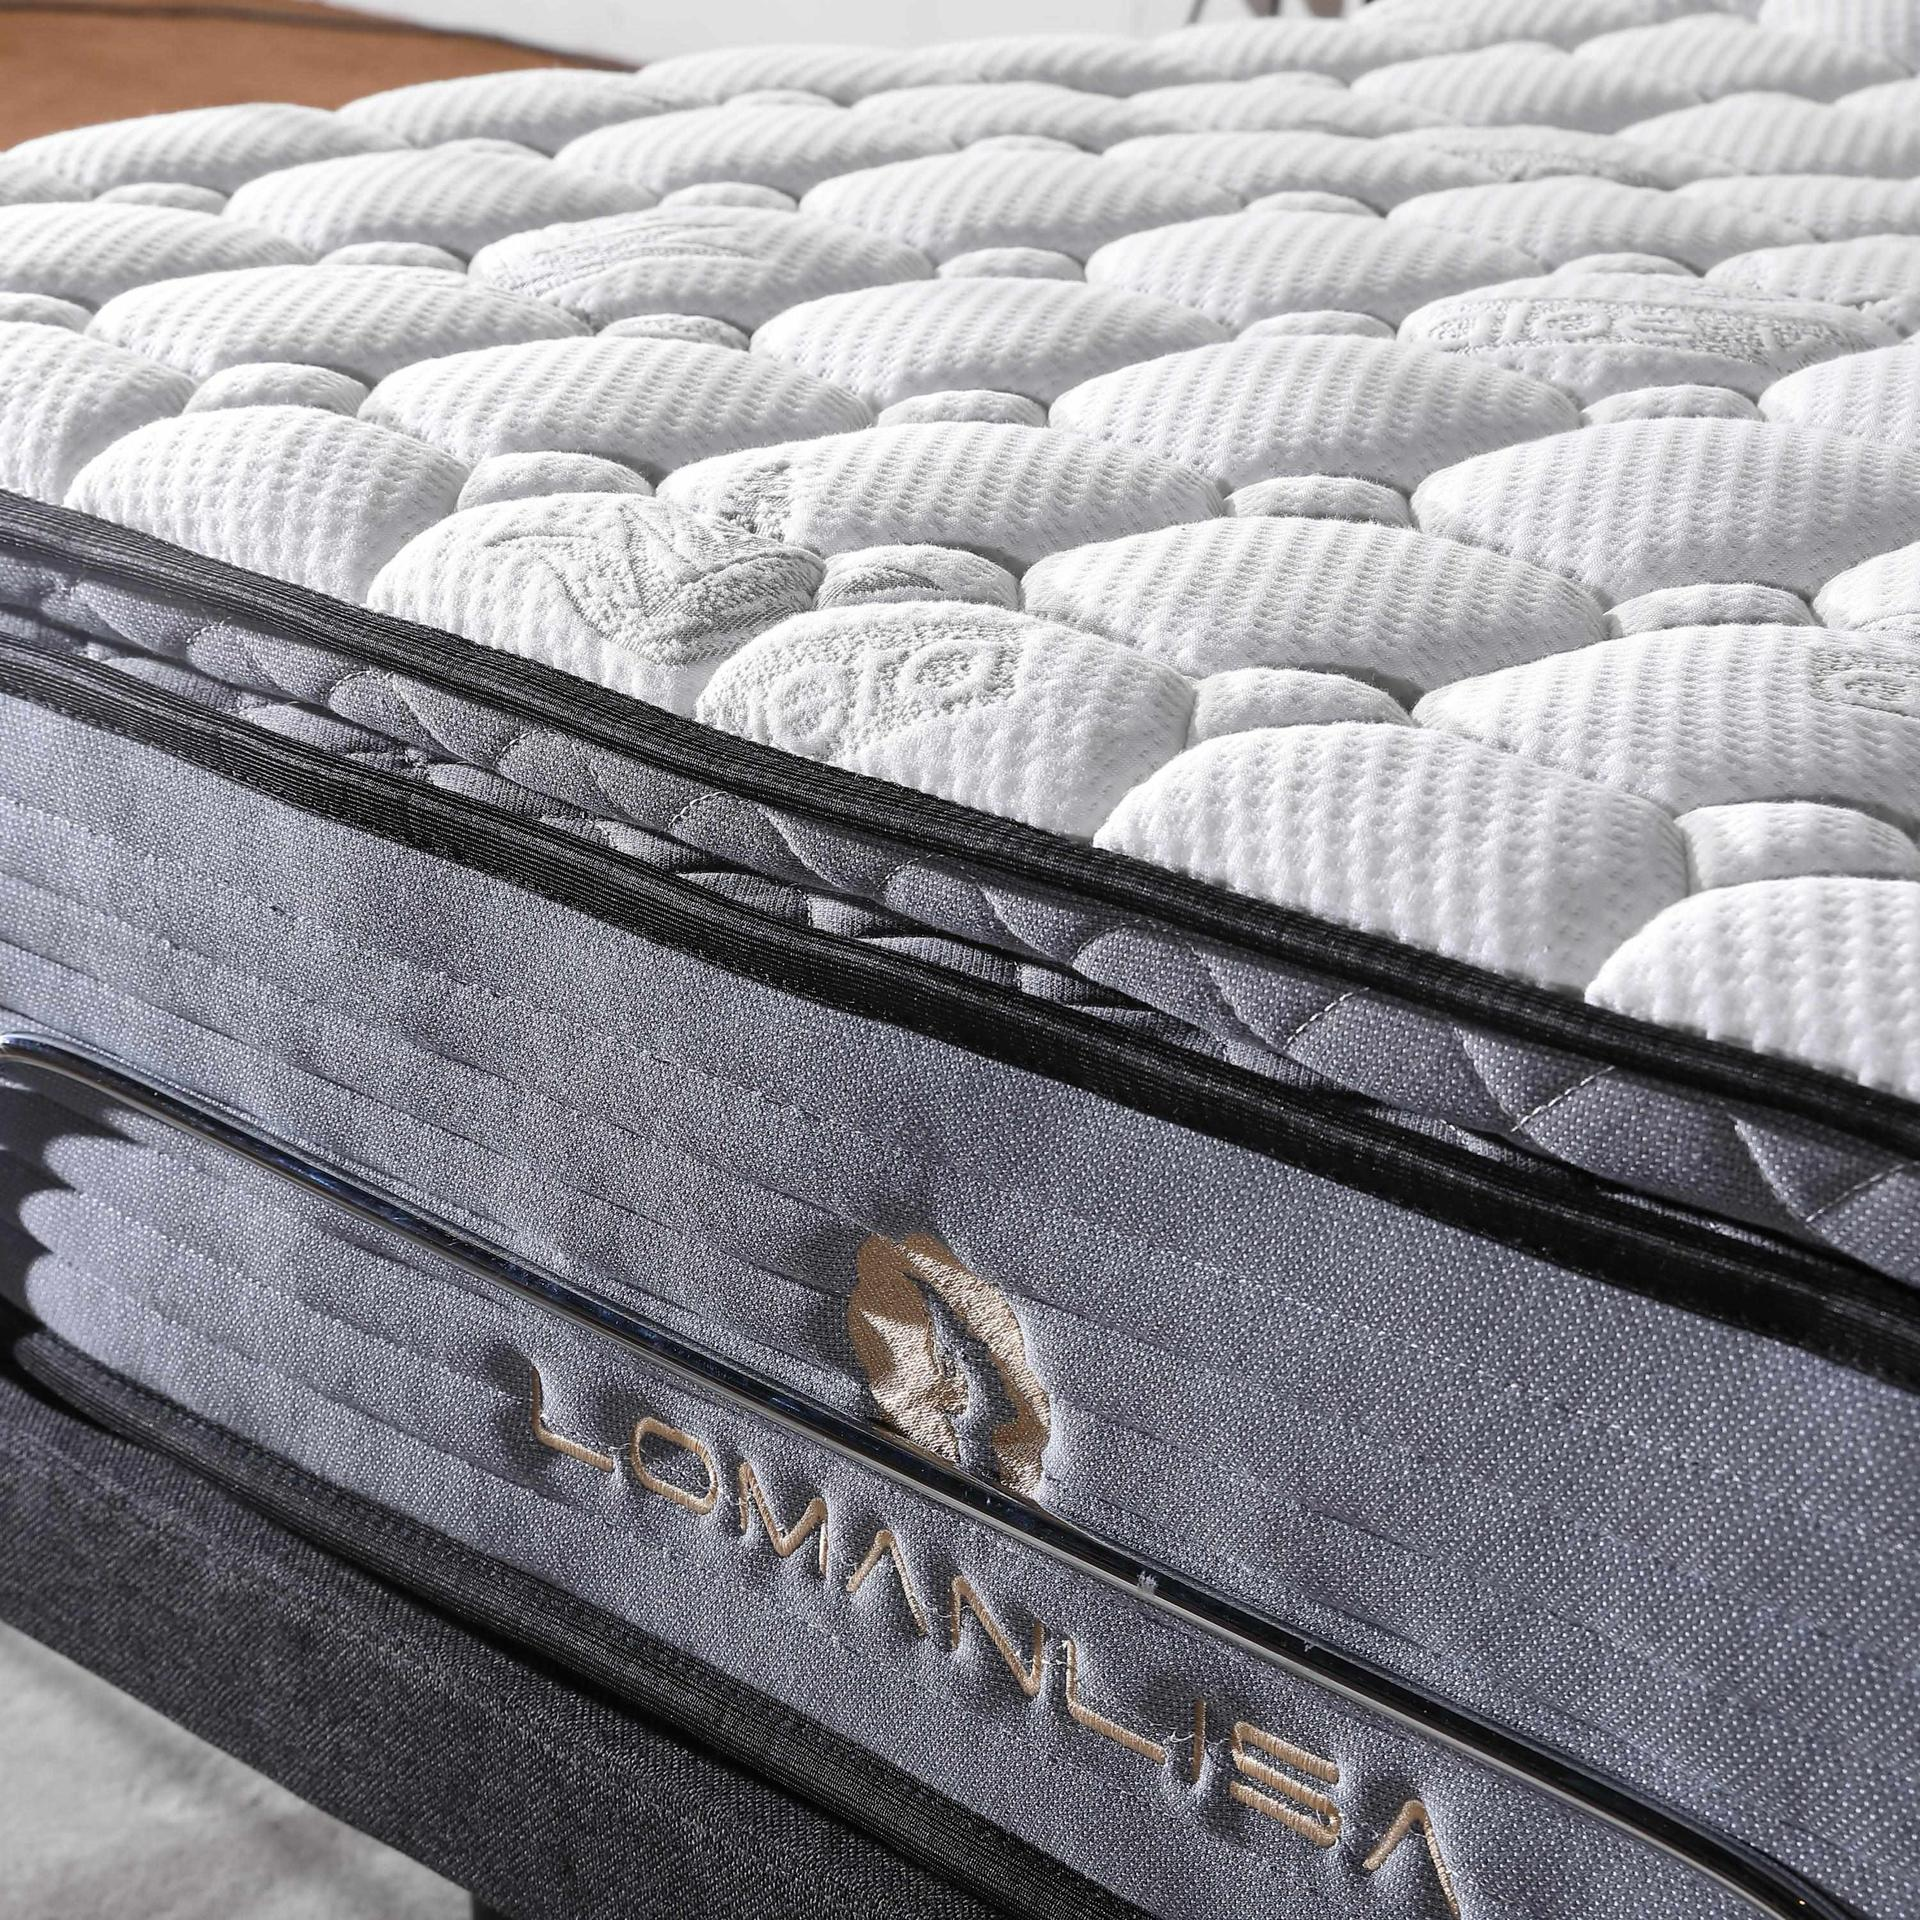 Adjustable Bed With Quiet And Stable Motor In King Queen Mattress